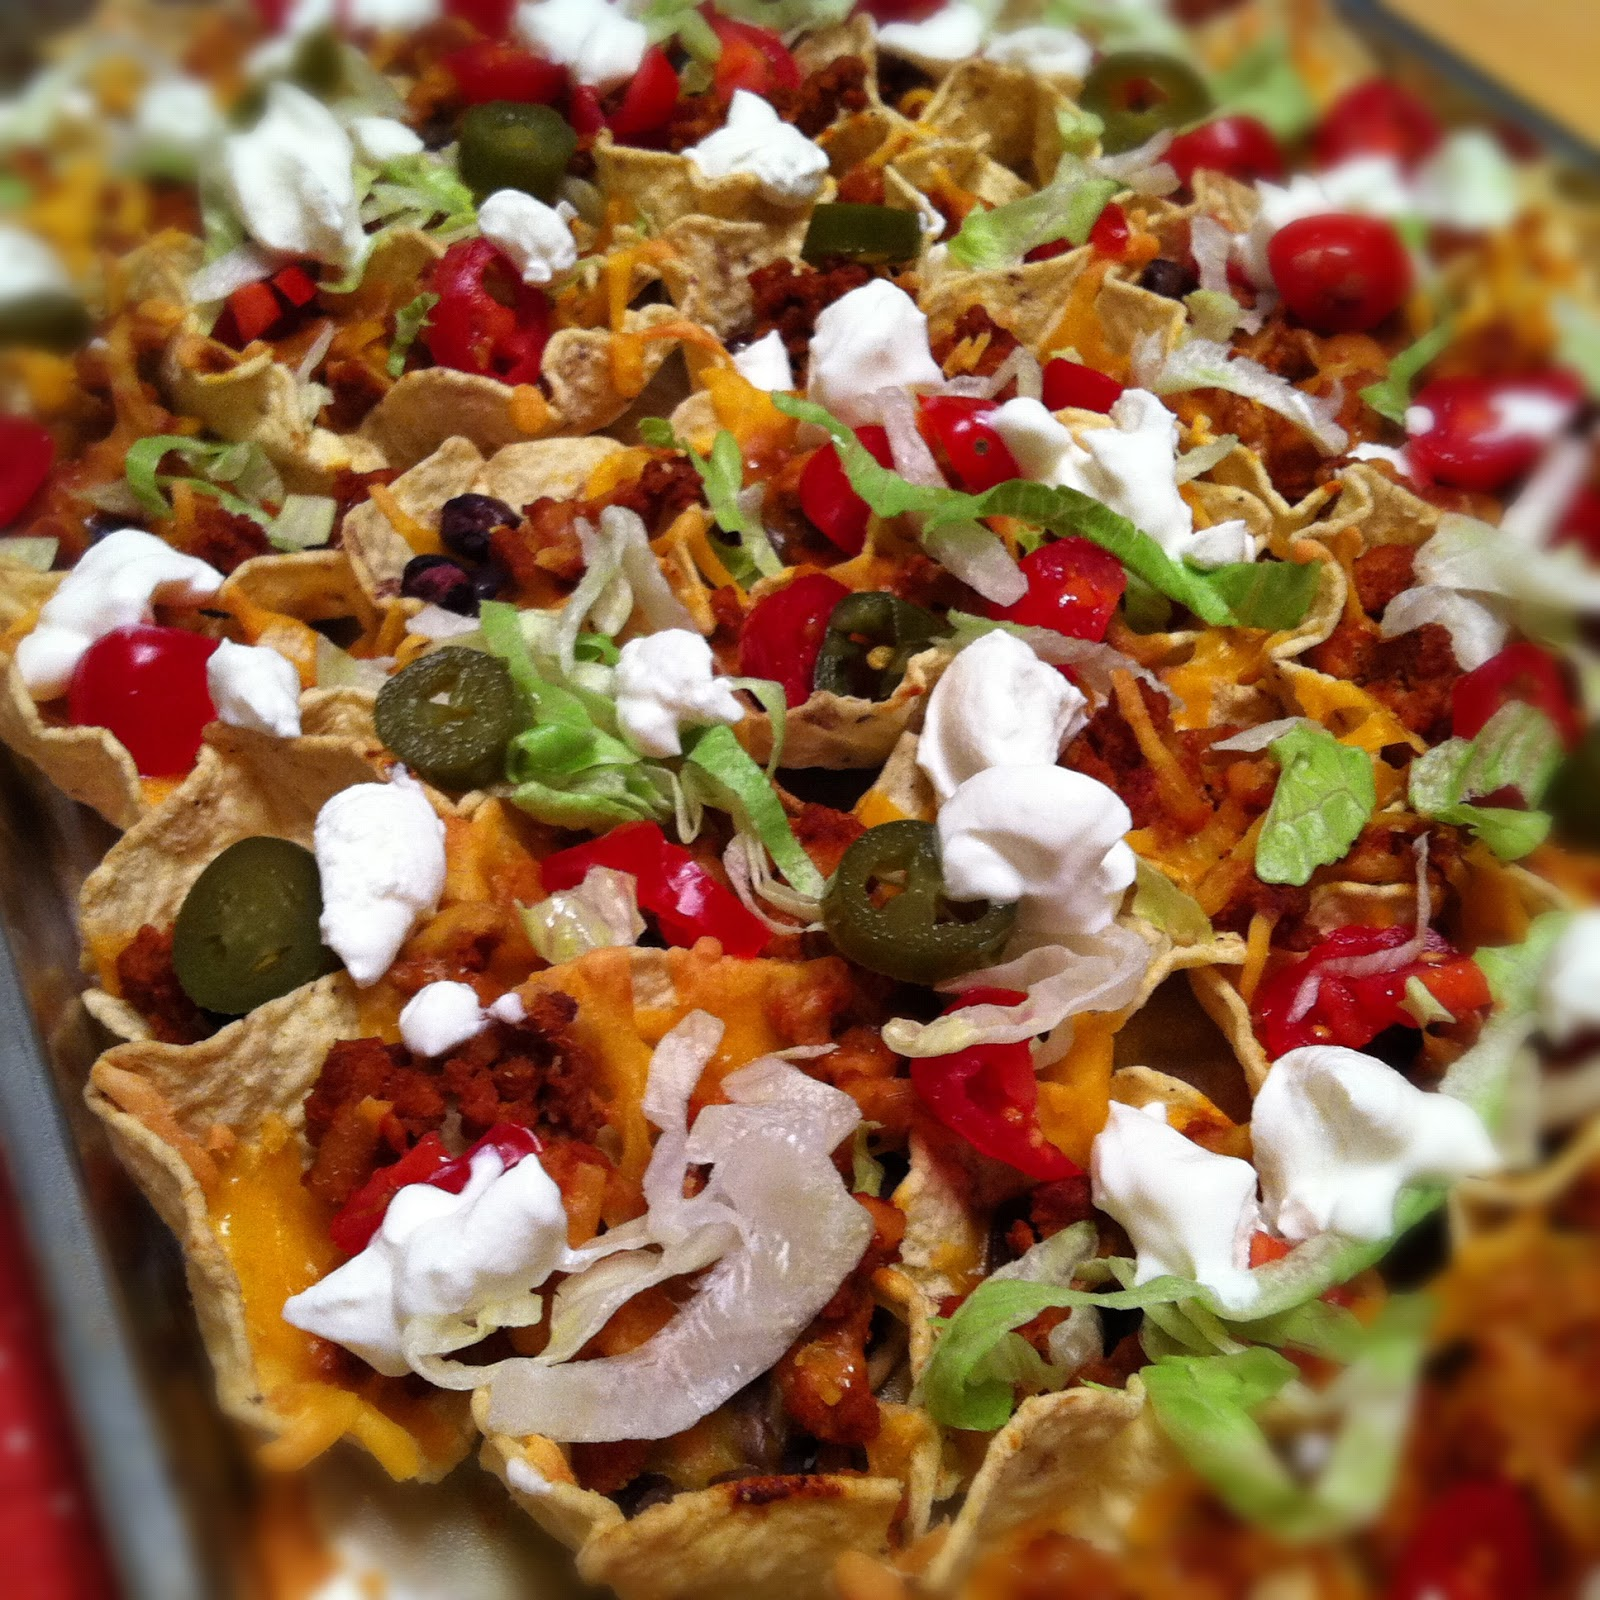 What's Cooking in the Burbs: Loaded Turkey Nachos